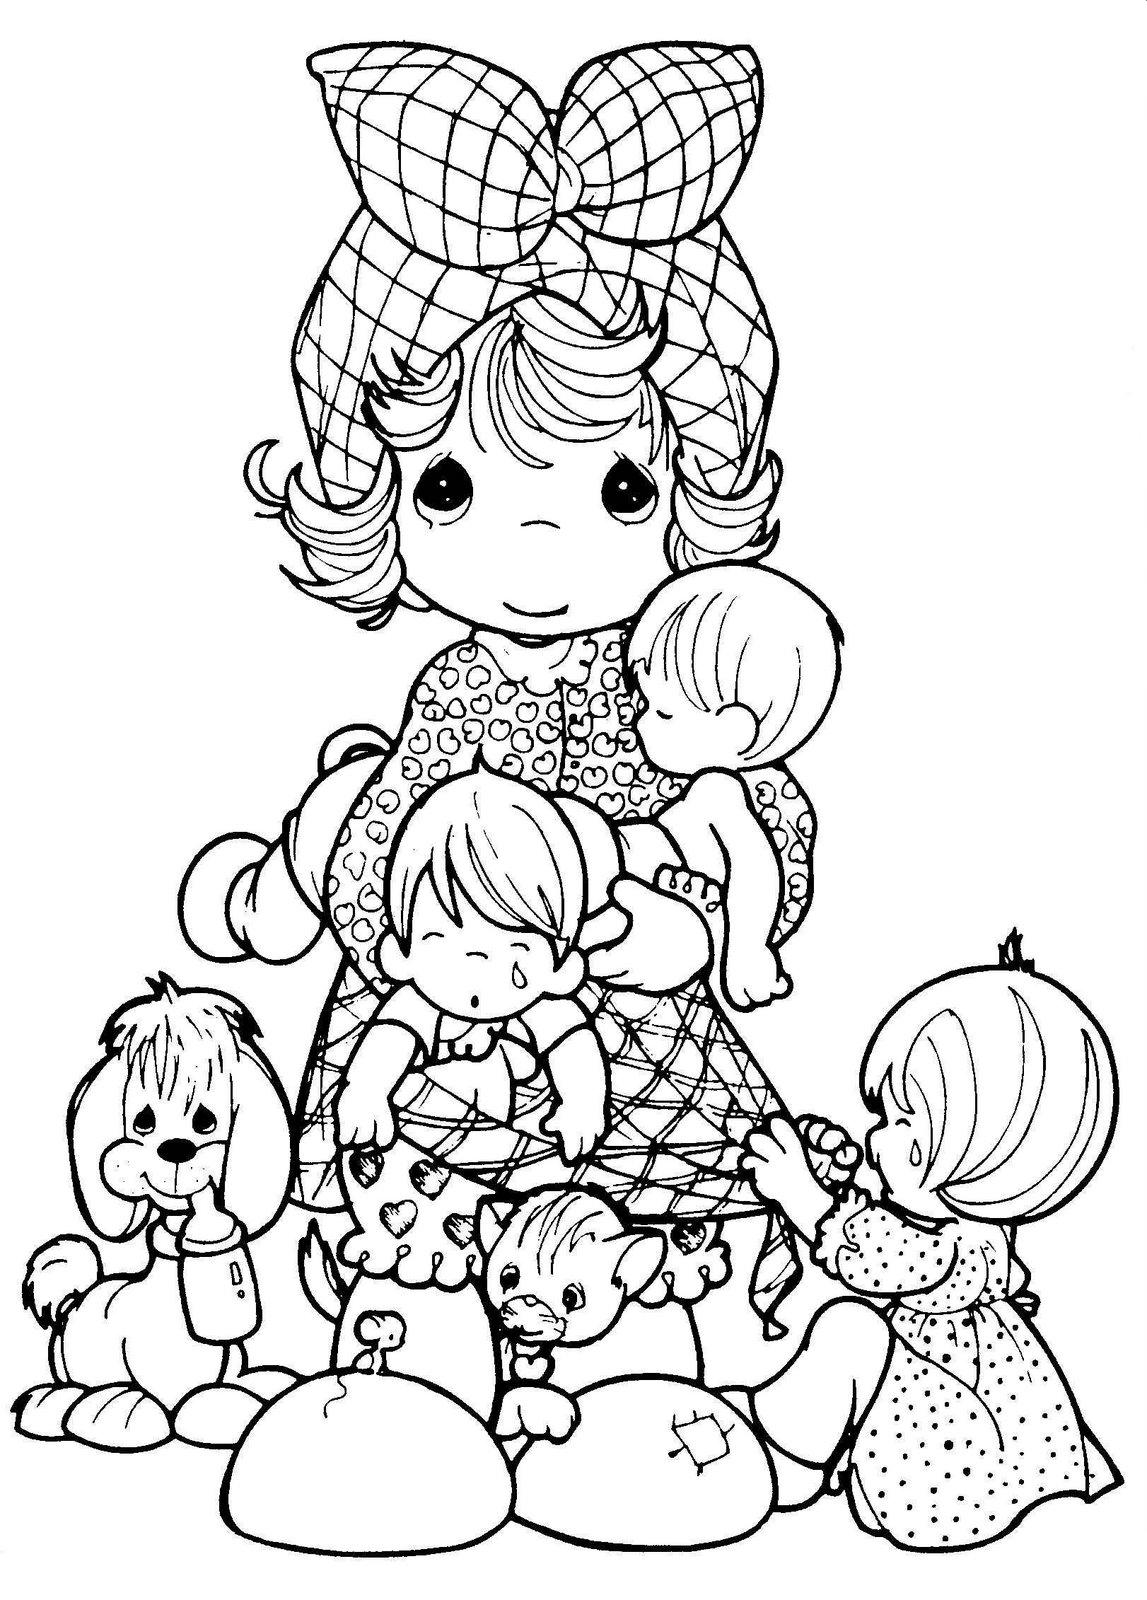 899 additionally 377 best images about coloring pages on pinterest coloring pages on vintage baby coloring pages moreover 650 best images about coloring pages for kids years 3 6 on on vintage baby coloring pages as well as vintage with baby chicks adult coloring pages pinterest on vintage baby coloring pages further 650 best images about coloring pages for kids years 3 6 on on vintage baby coloring pages